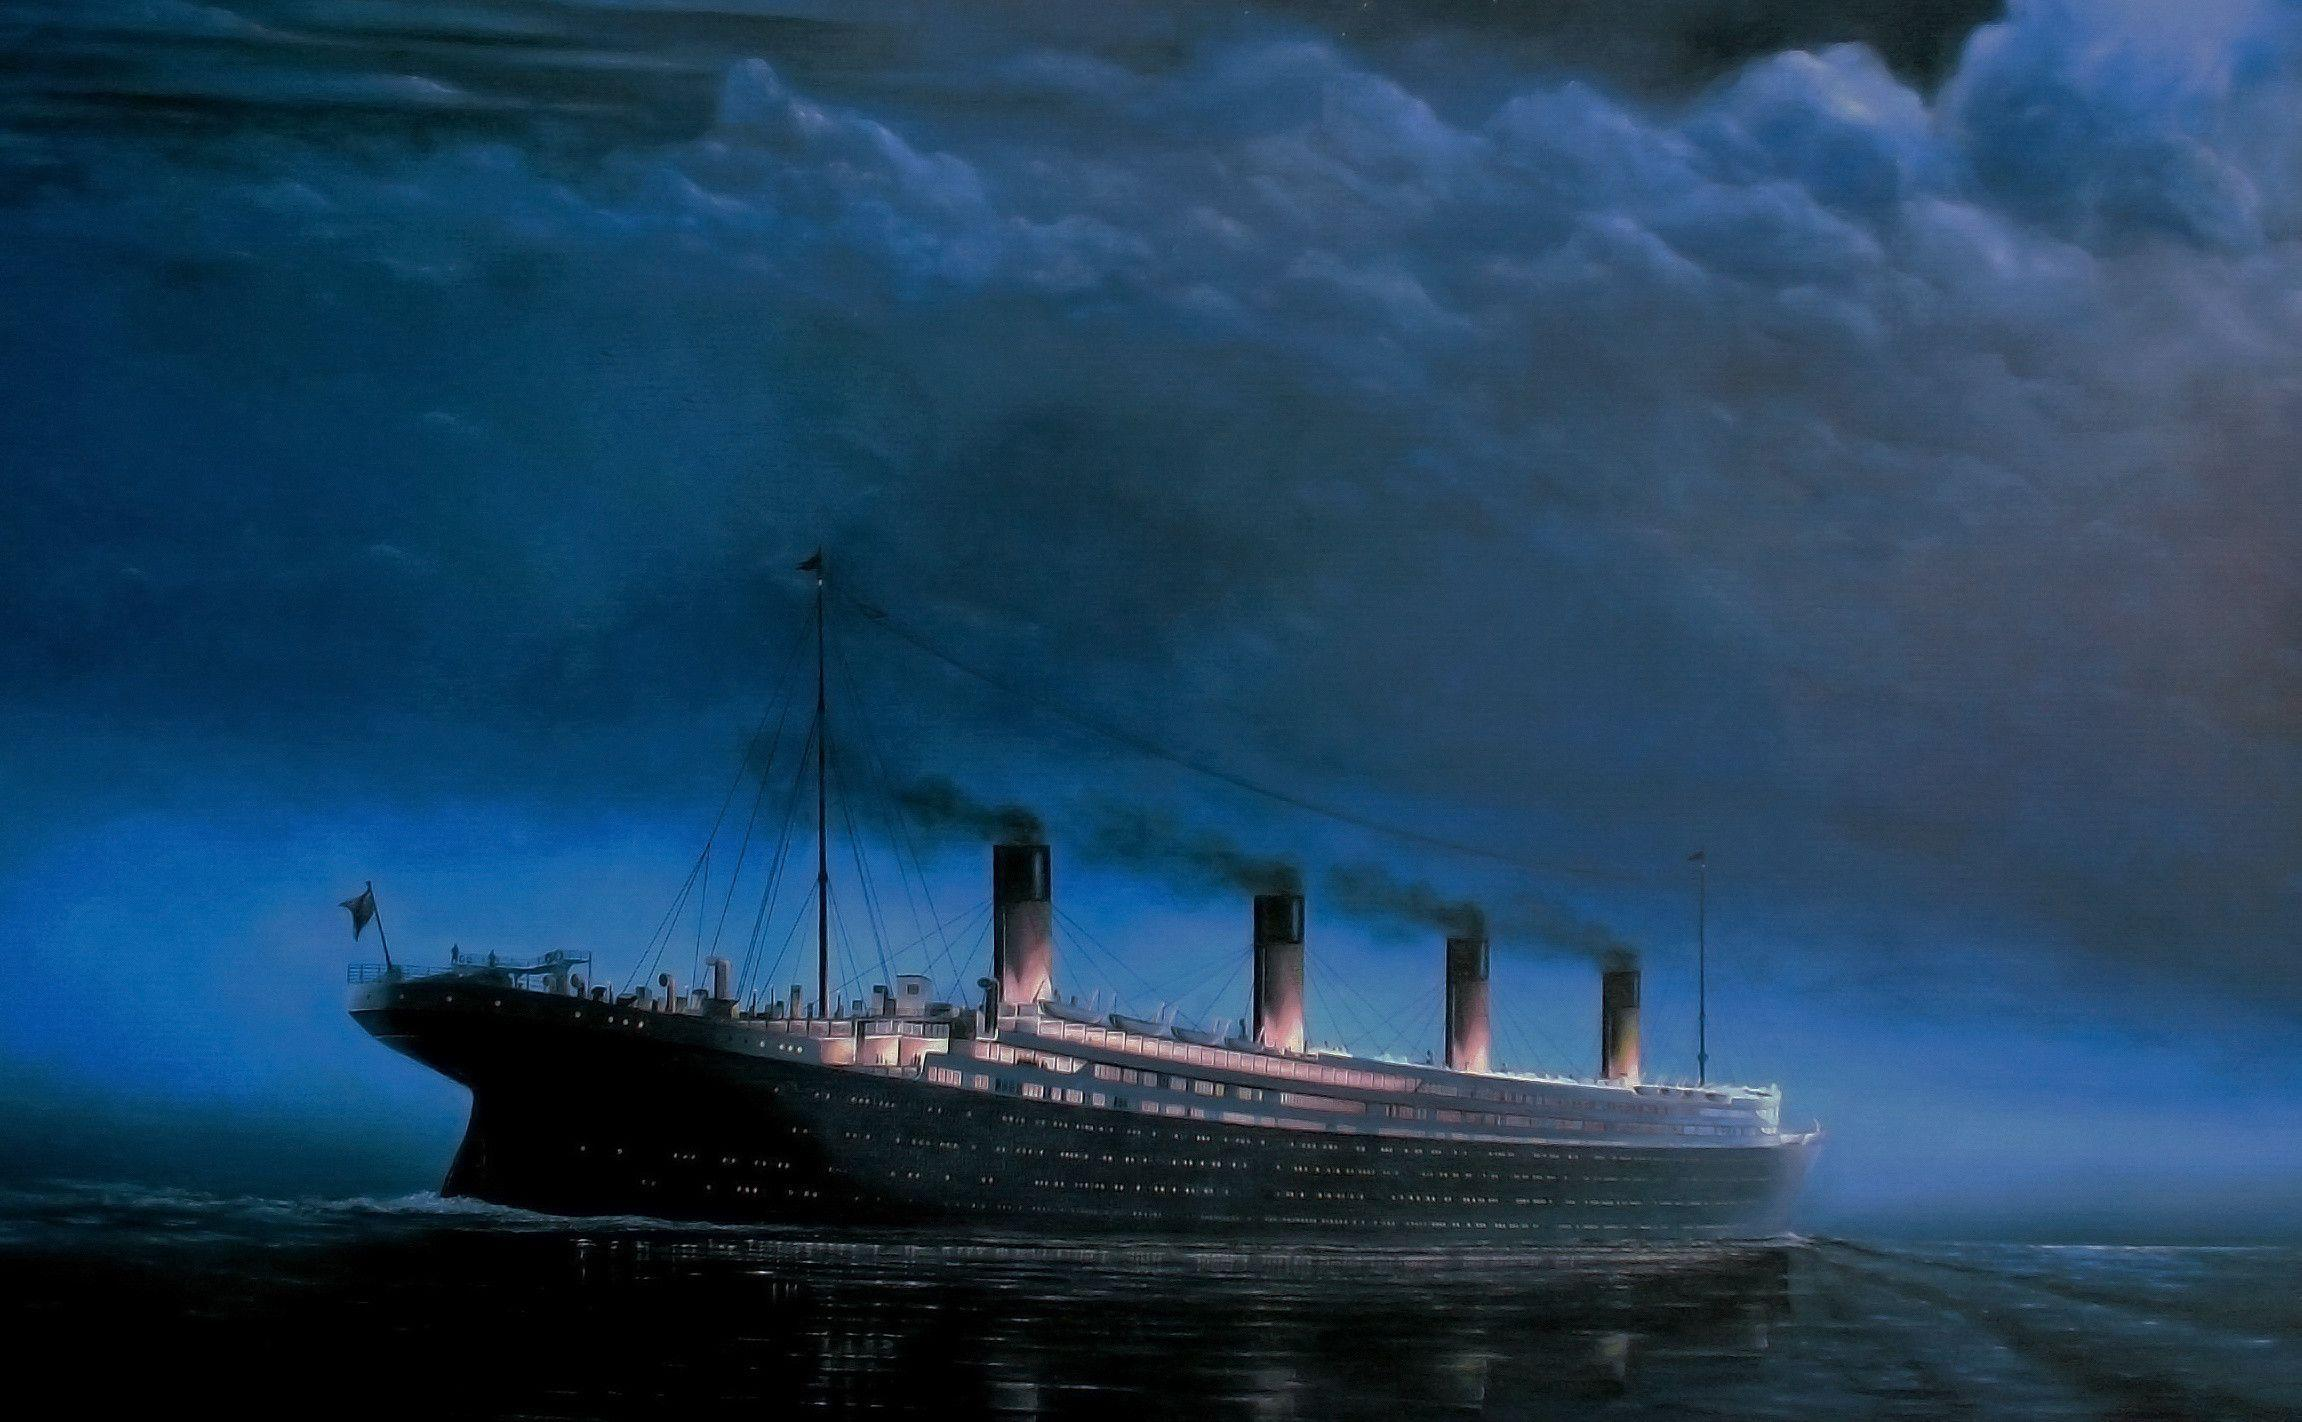 essay titanic ship Rms titanic essaysthe rms titanic was called the ship of dreams, and some called her the unsinkable ship it was the largest steam engine ever built in the world she was the most beautiful and biggest ship ever to set sail to the sea in the summer of 1907, lord.